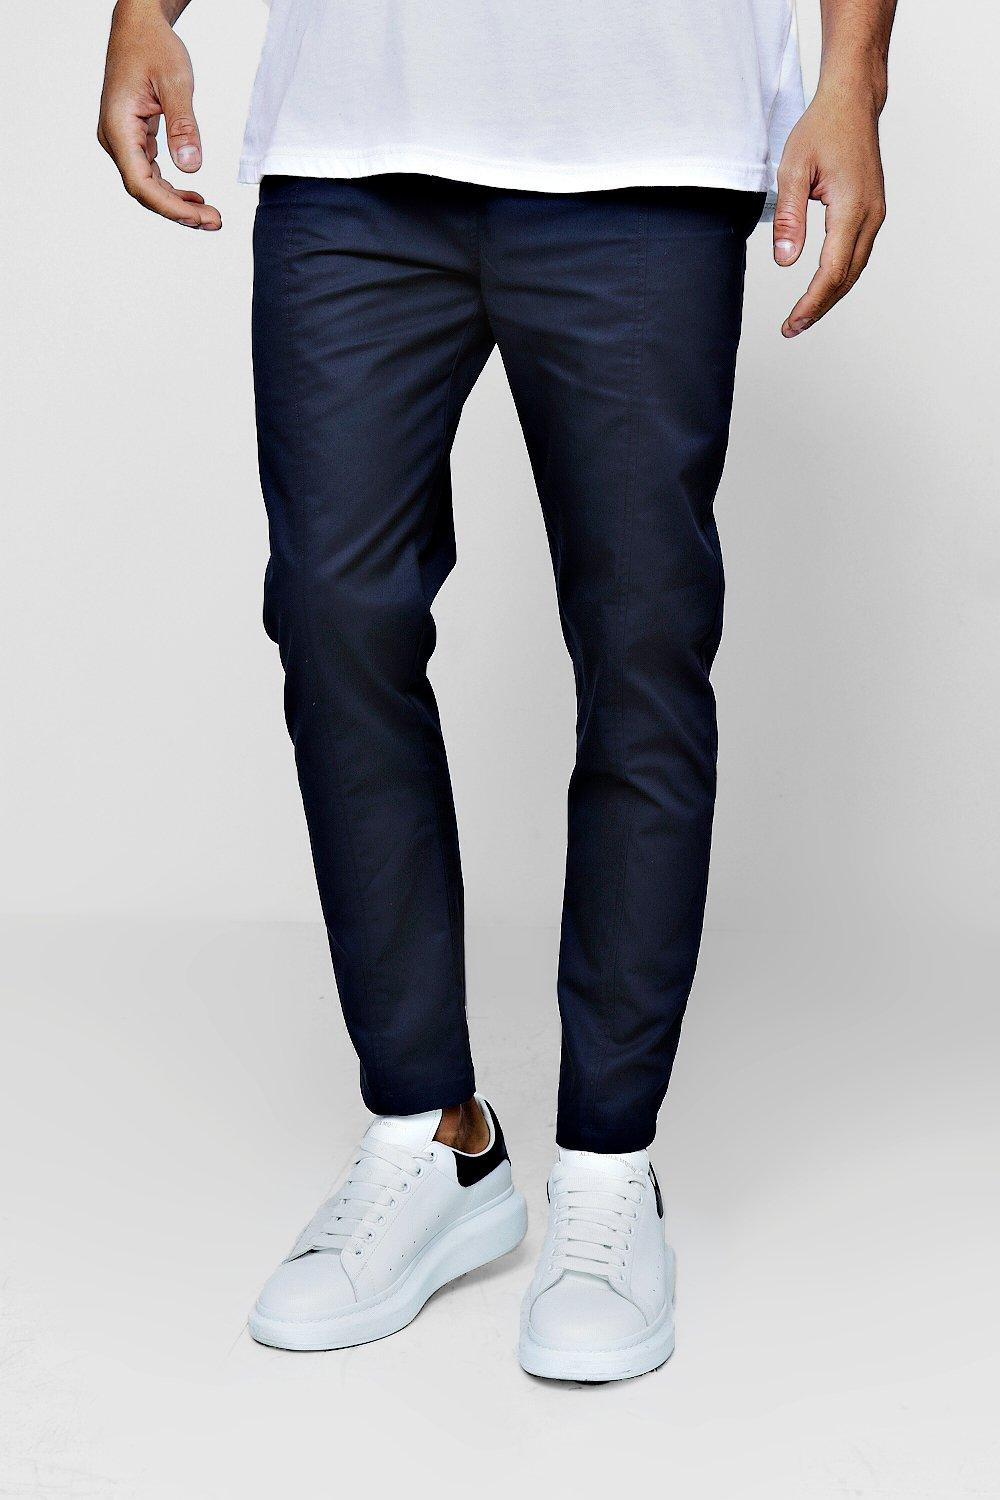 d3b916196cec Mens Navy Cotton Smart Jogger Style Chino Trouser. Hover to zoom